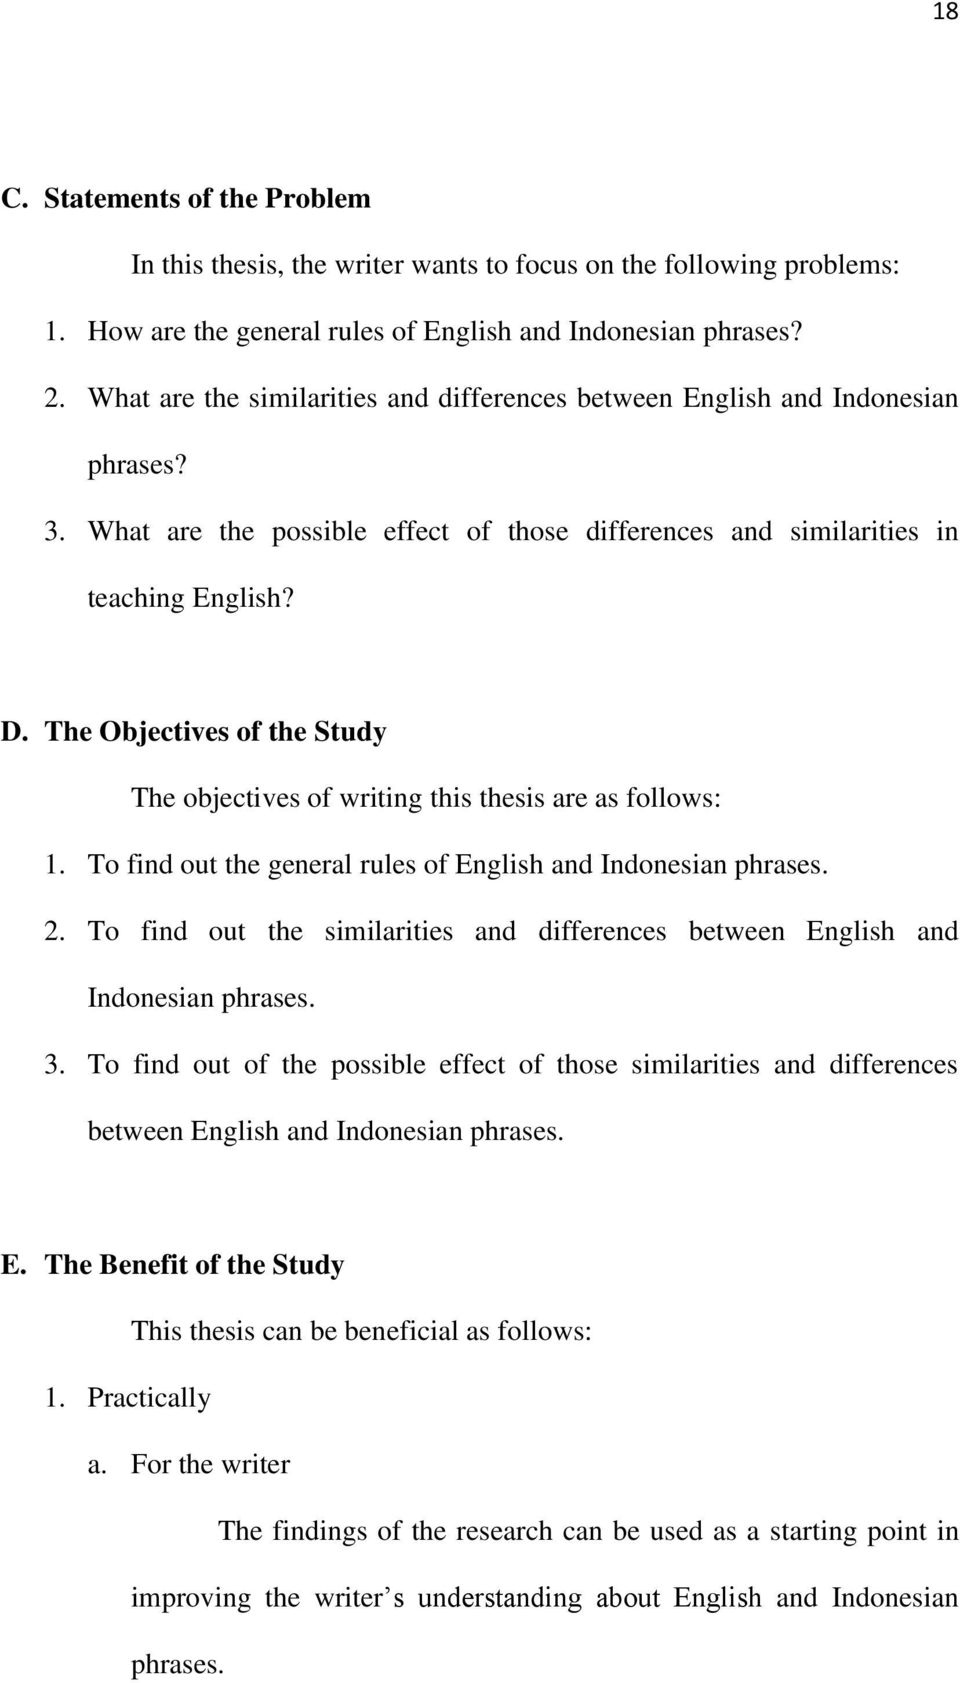 The Objectives of the Study The objectives of writing this thesis are as follows: 1. To find out the general rules of English and Indonesian phrases. 2.